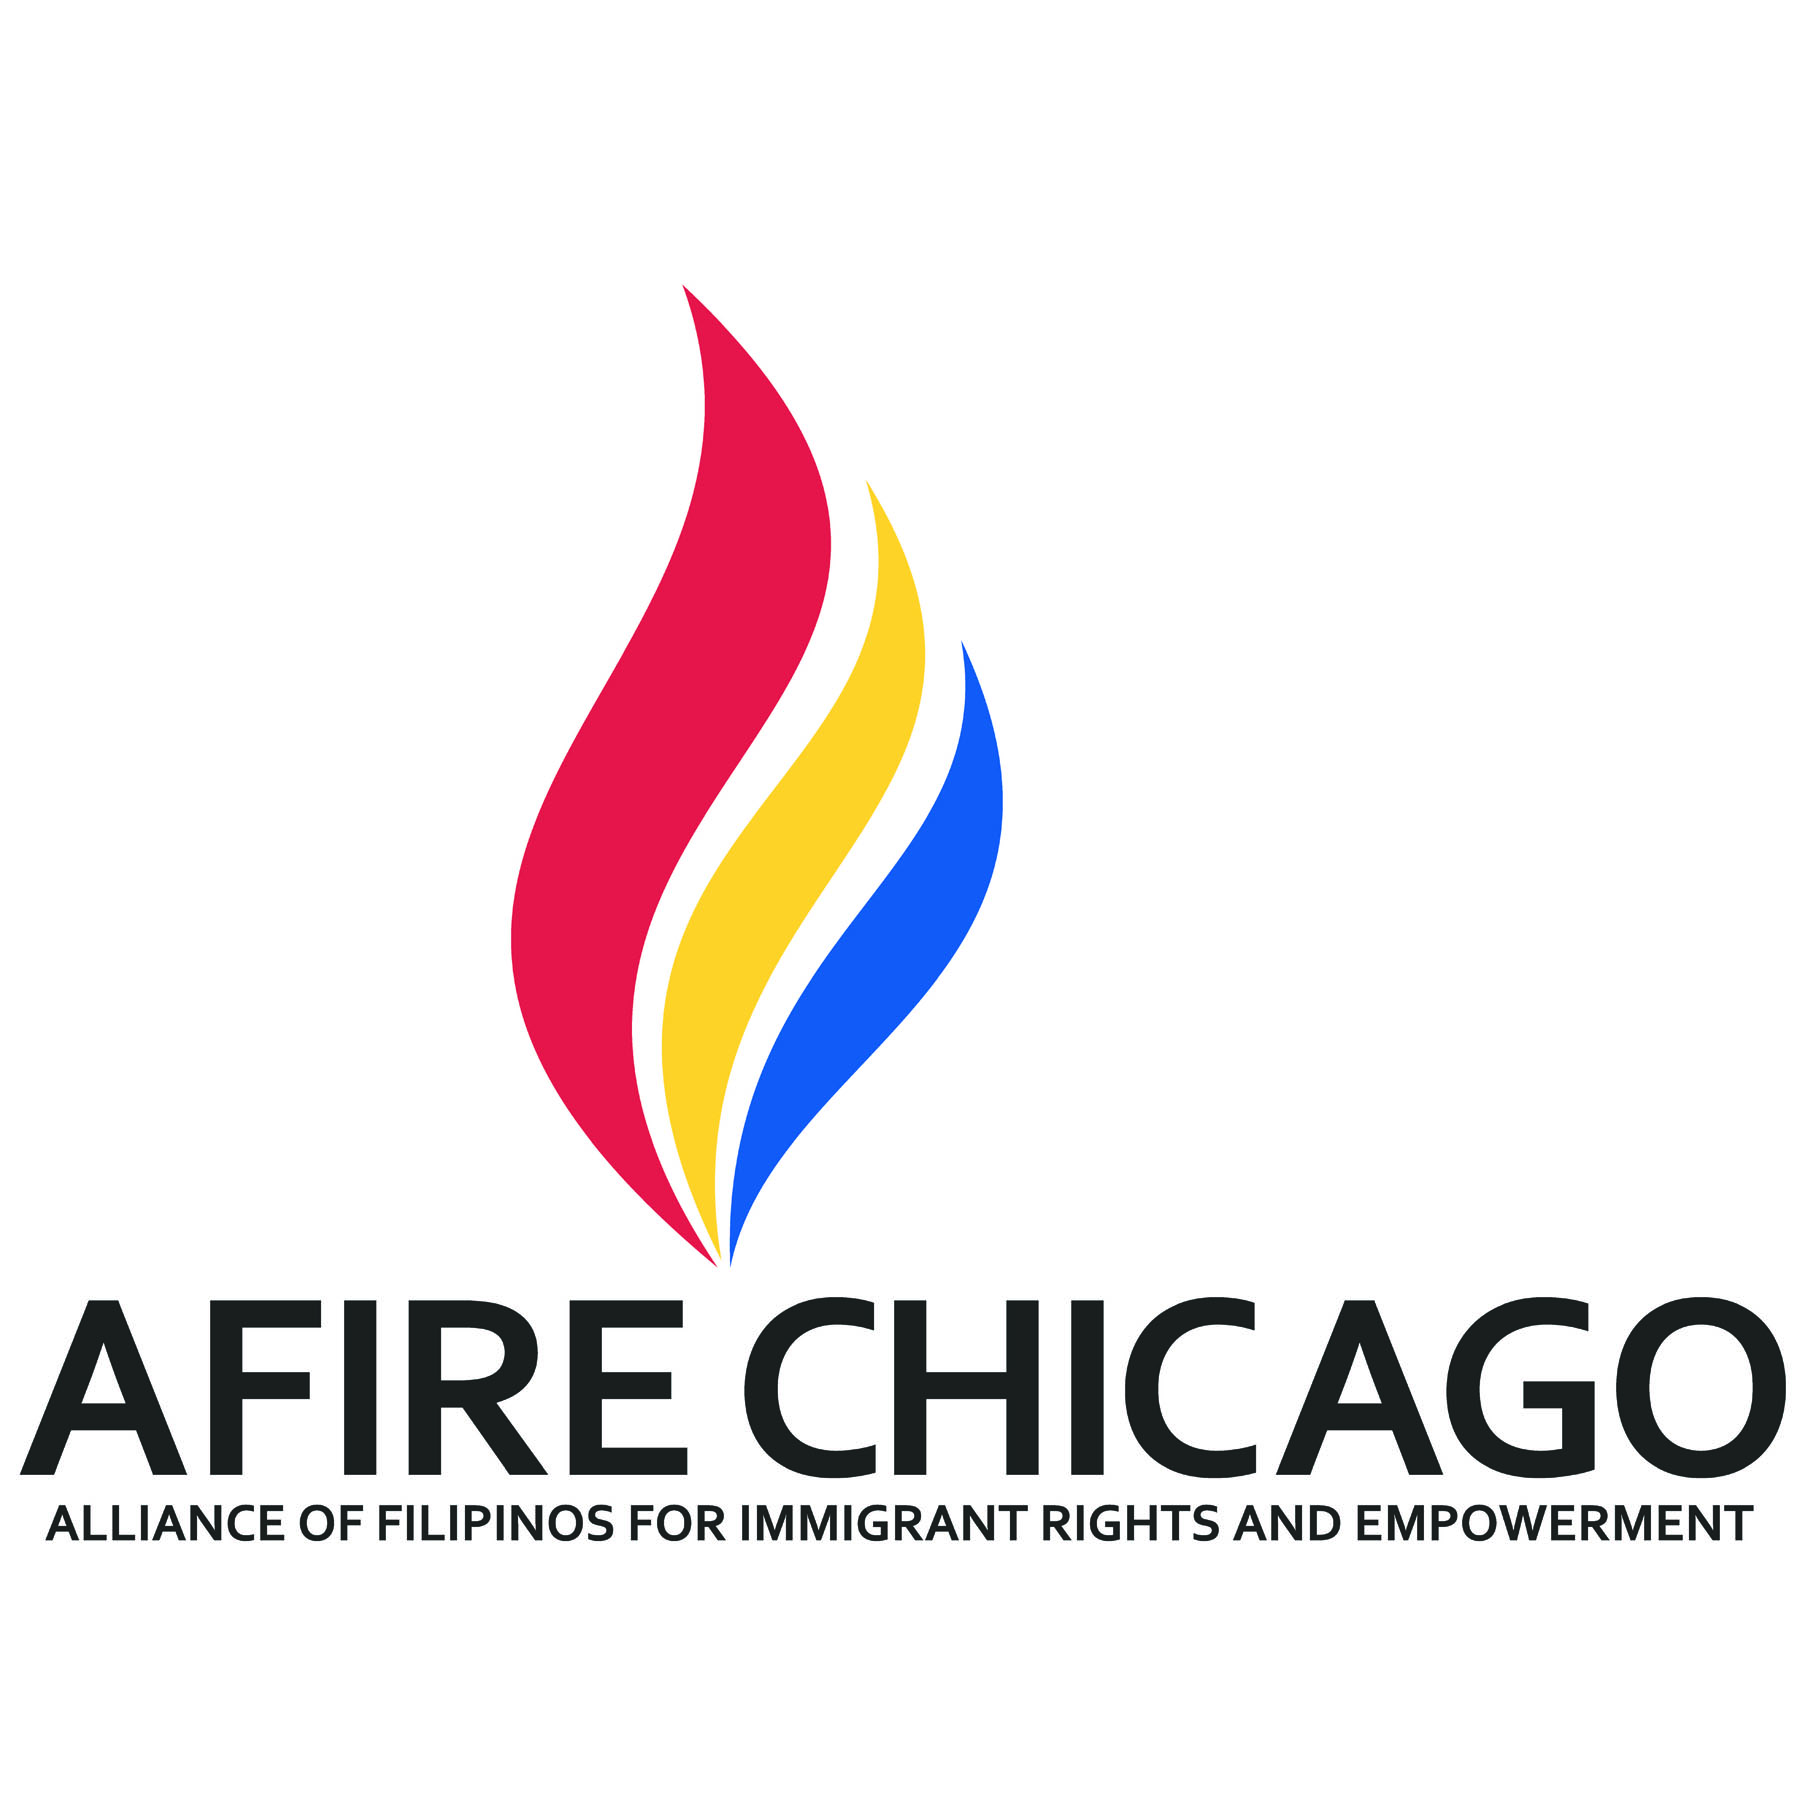 ALLIANCE OF FILIPINOS FOR IMMIGRANT RIGHTS AND EMPOWERMENT (AFIRE)   Facebook:  AFIRE Chicago  Twitter:  @afirechicago  Instagram:  @afirechicago   The Alliance of Filipinos for Immigrant Rights and Empowerment (AFIRE) is a grassroots community organization that builds the capacity of Filipino/a/xs to organize on issues of social, racial, and economic justice that affect undocumented immigrants, domestic workers, seniors, and youth. Major programs include legal clinics (civil law, employment law, and immigration law consultations), workforce empowerment (Know Your Rights + CPR & first aid certification trainings for domestic workers), Tagalog 101 classes, and citizenship application assistance workshops. Major accomplishments include the passing of the Illinois Domestic Workers Bill of Rights.